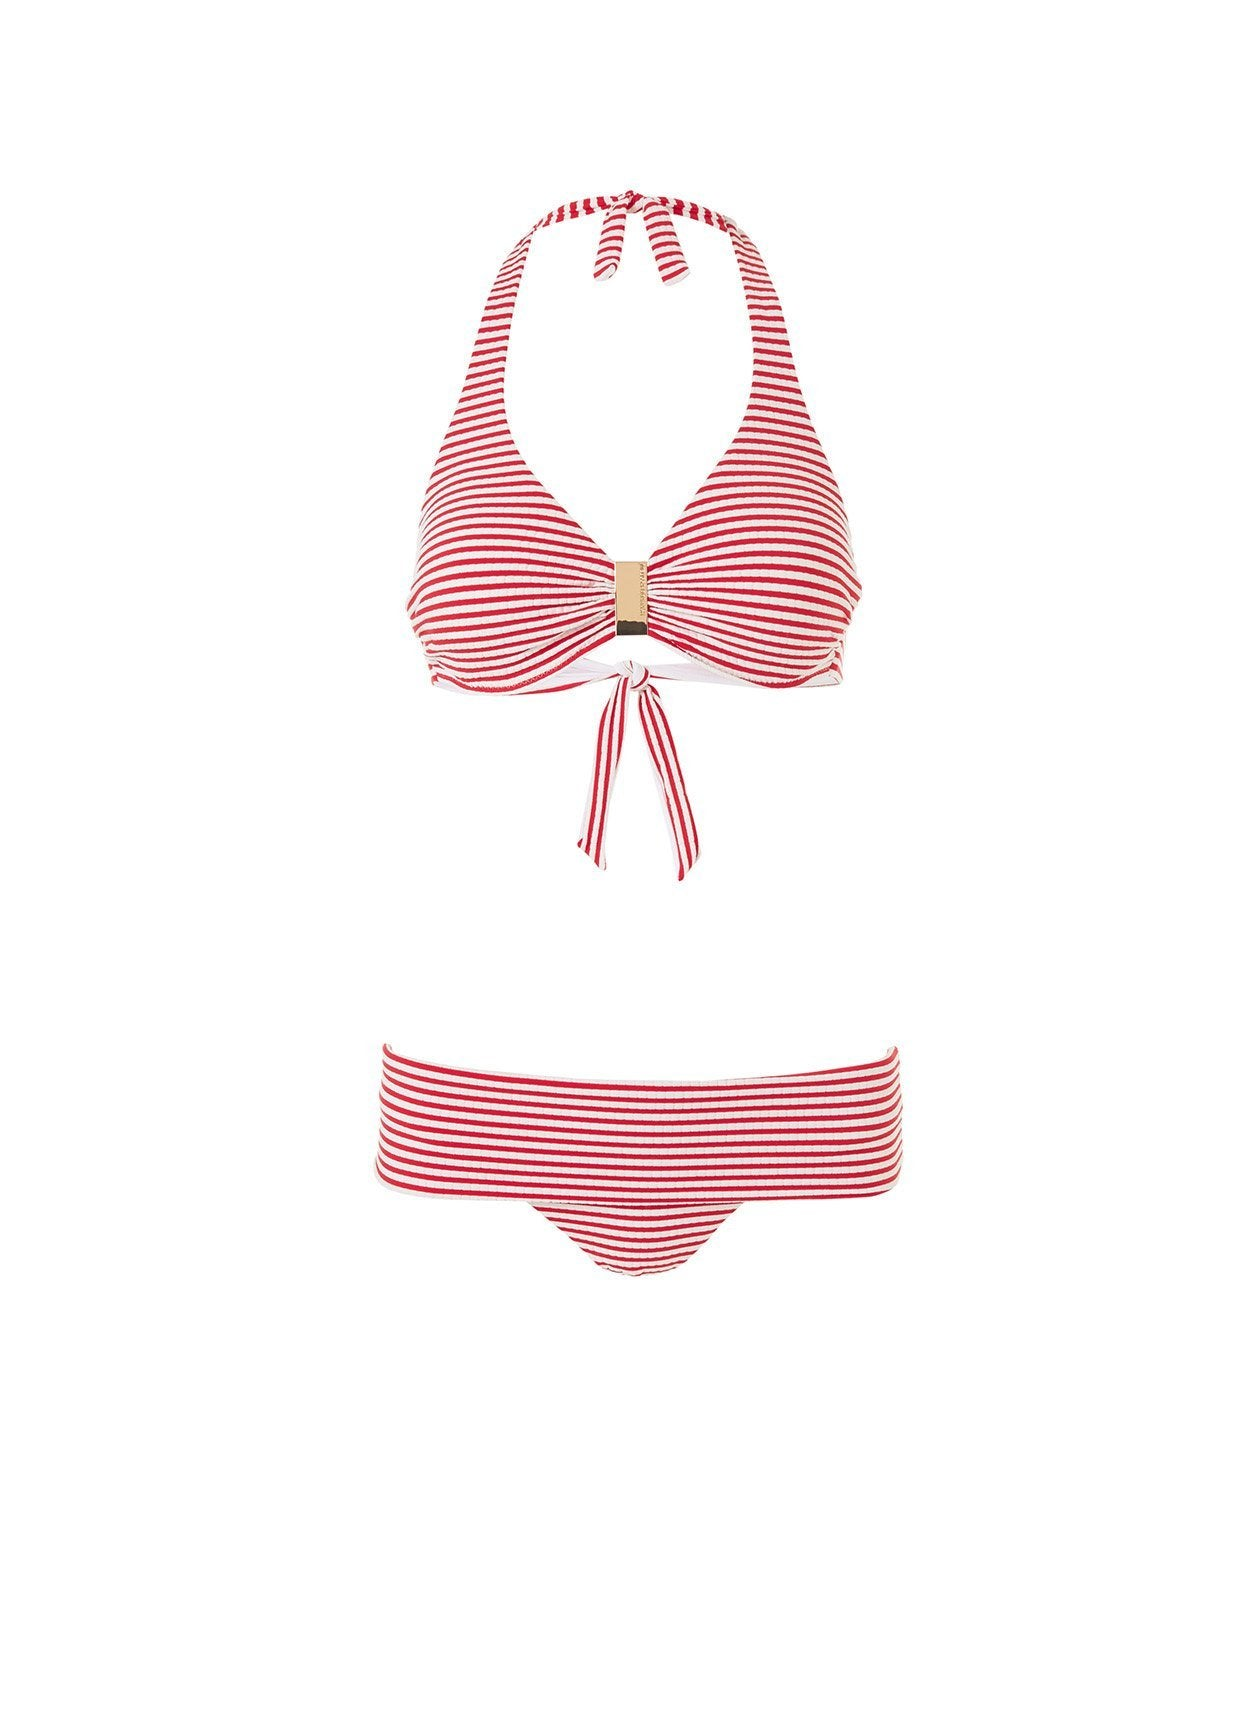 provence bikini nautical red